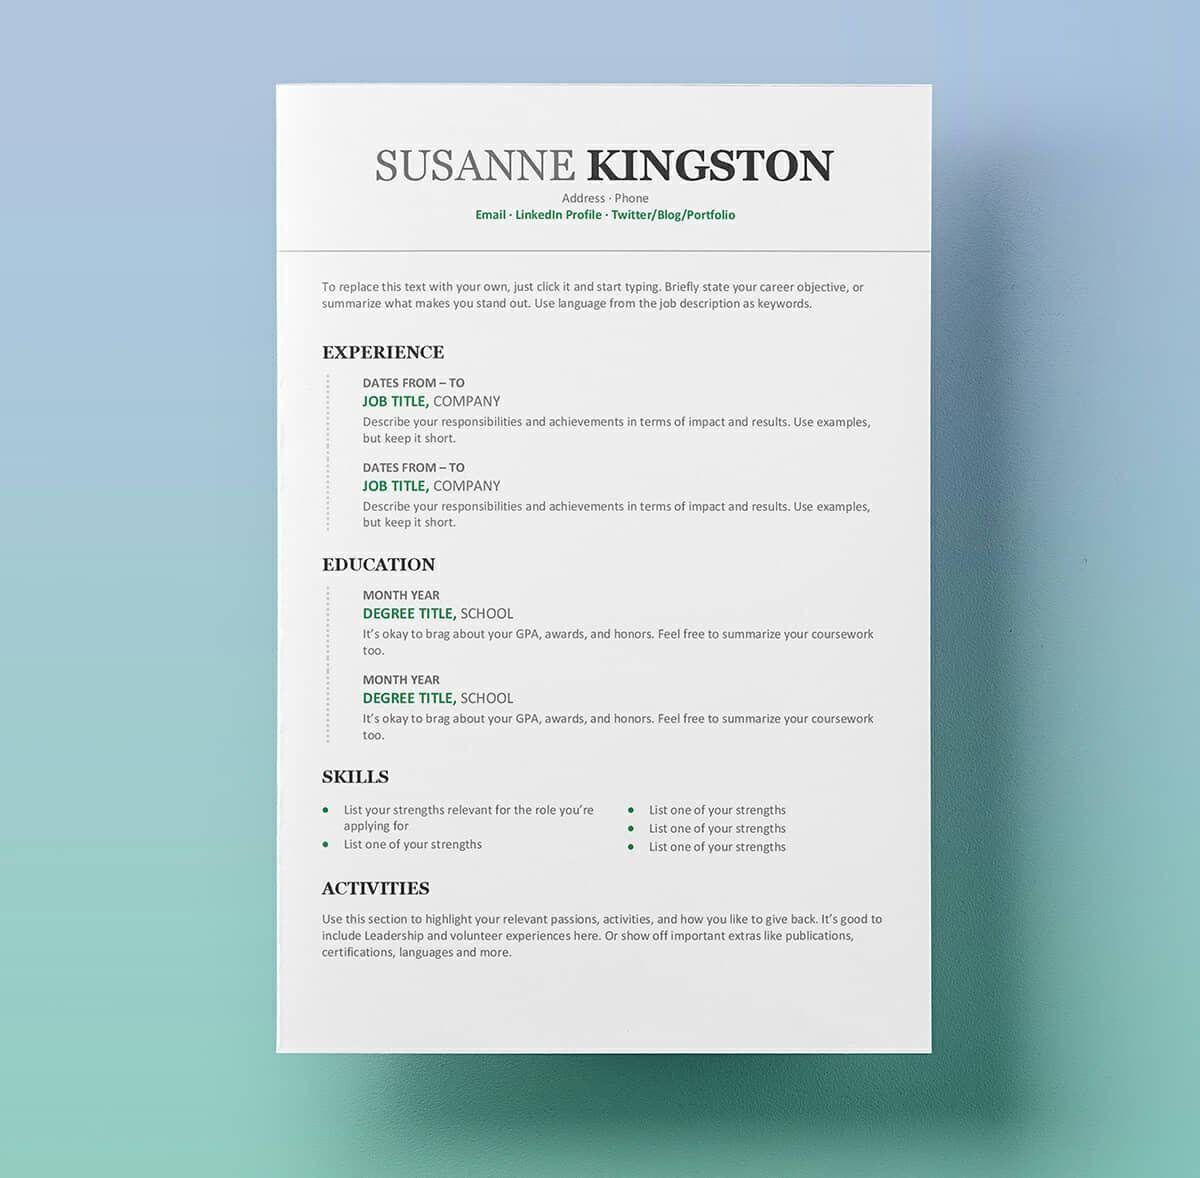 009 Breathtaking Professional Resume Template Word Free Download High Definition  Cv 2020 With PhotoFull